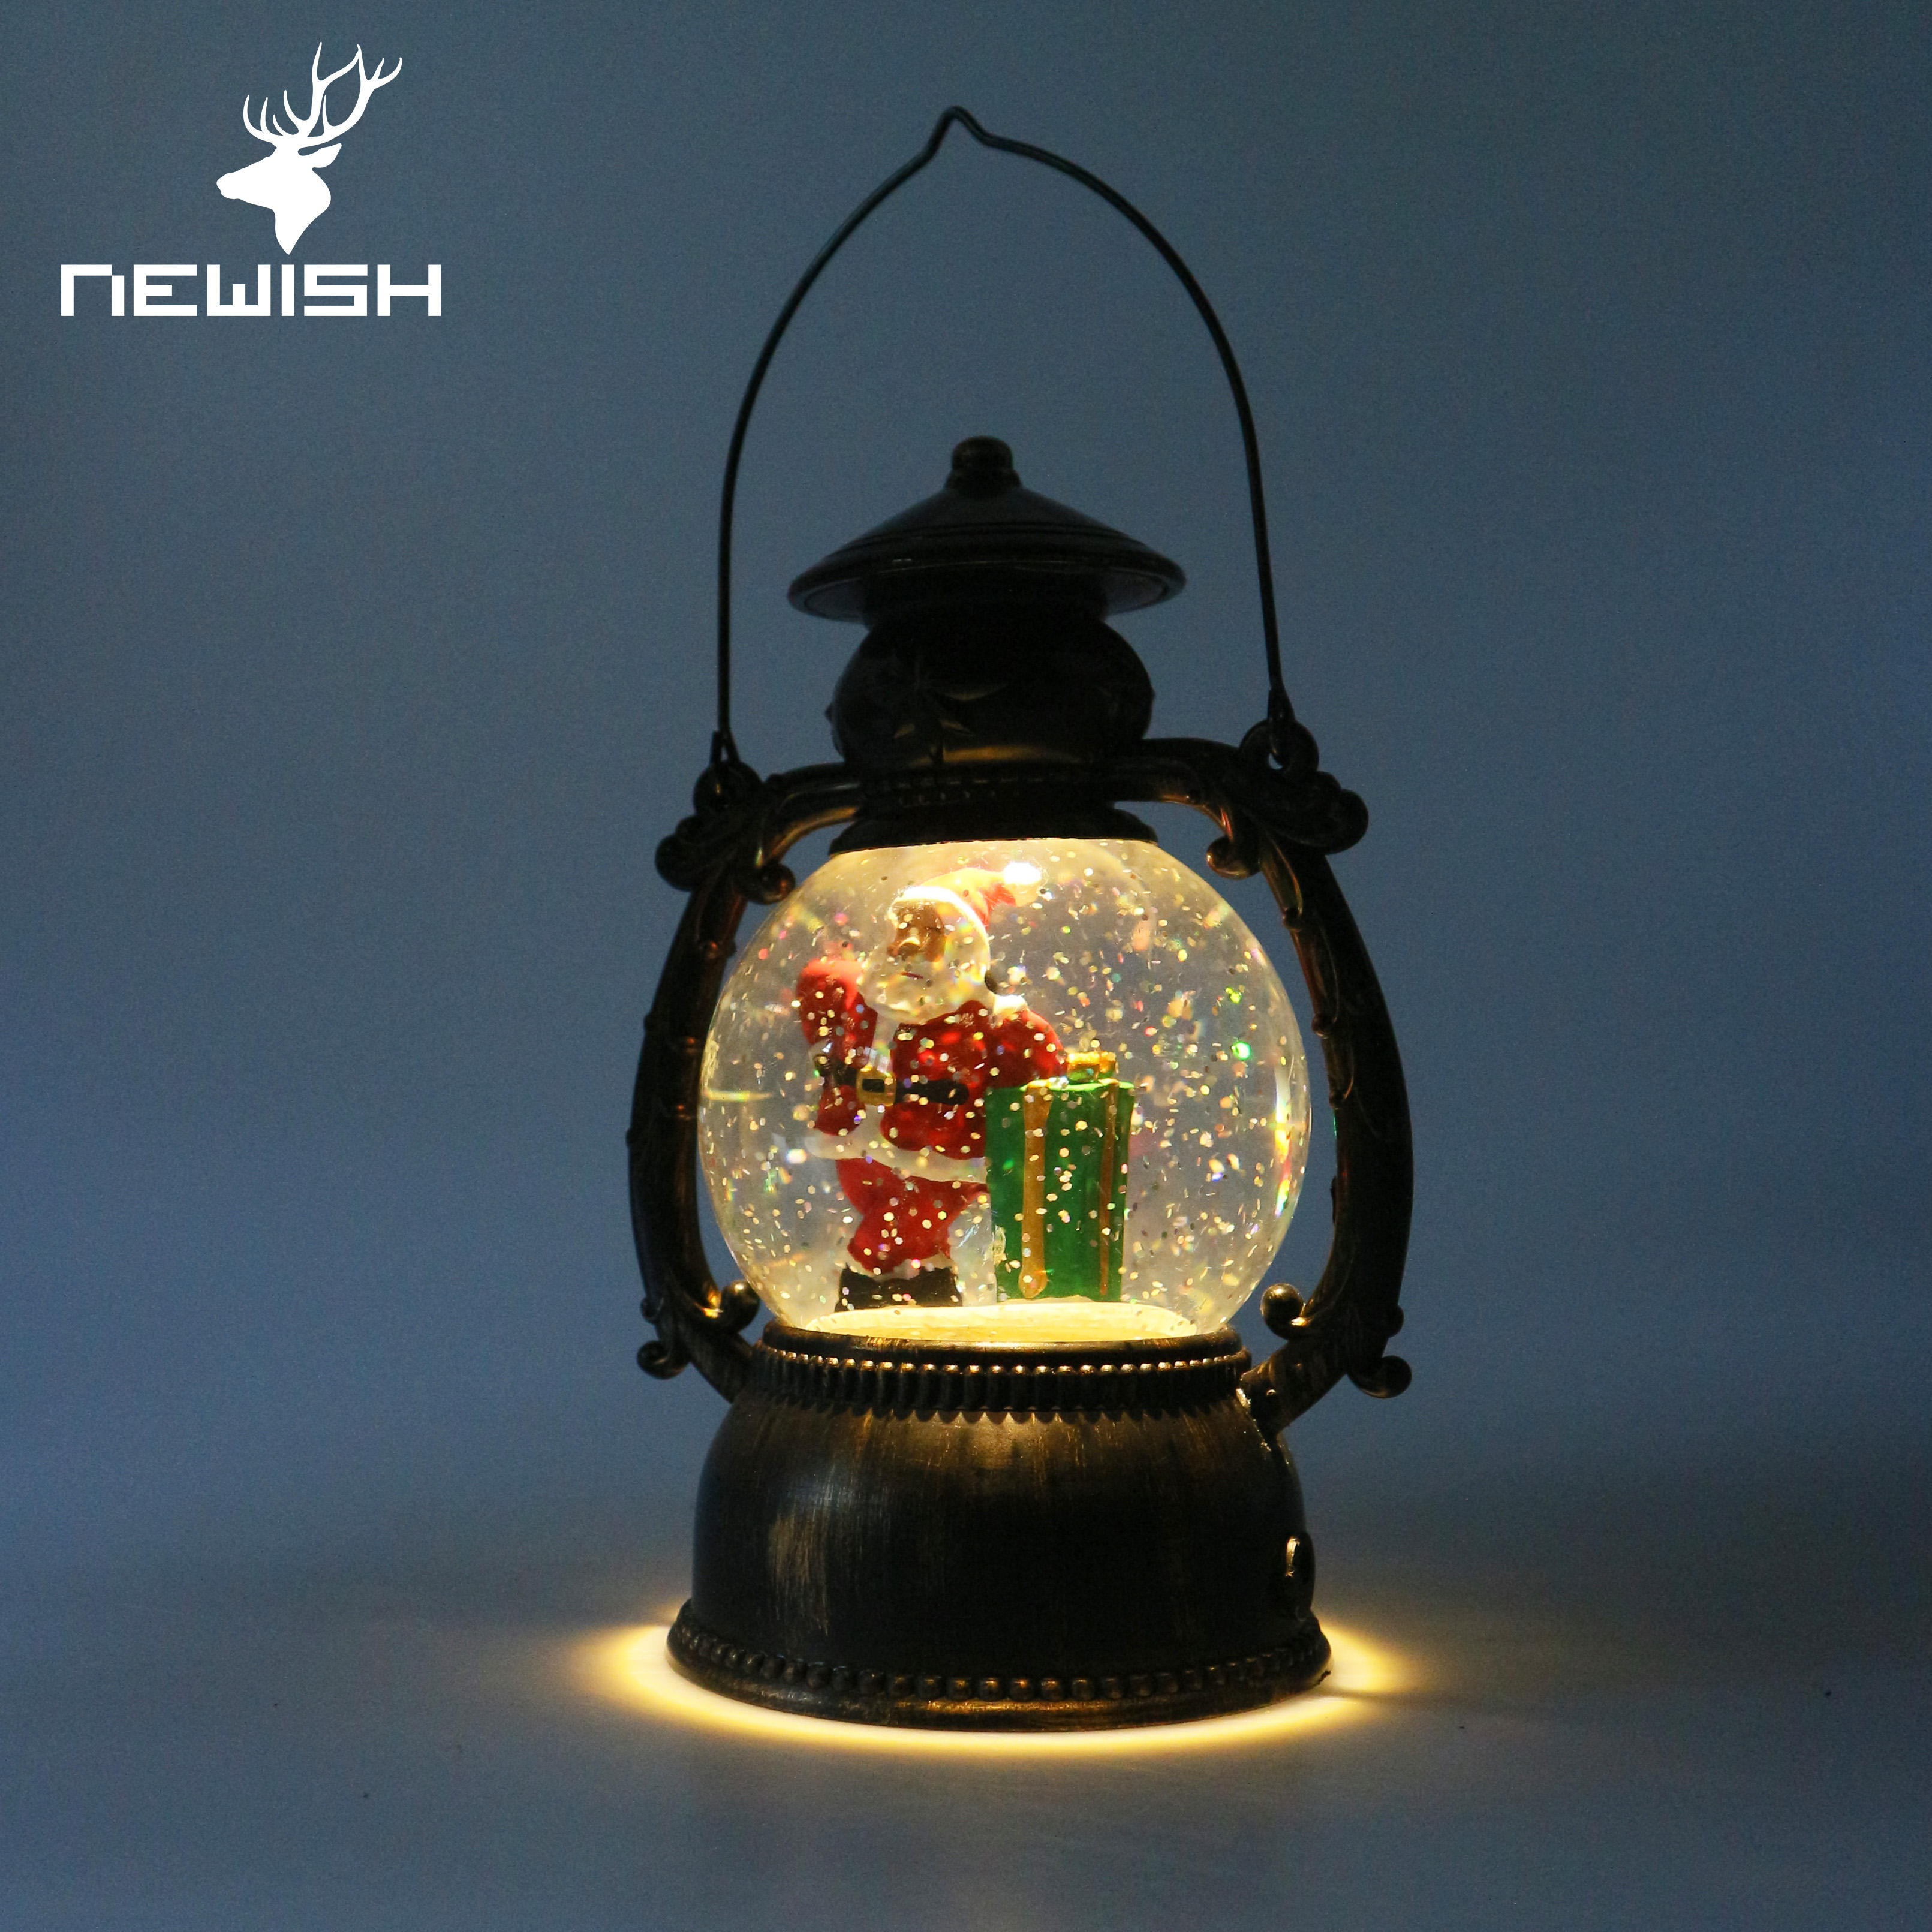 Newish Sale 20センチメートルHome Decor Gifts Led LightとBattery Operated Lighted Swirling Glitter Water Ornament Christmas Lantern